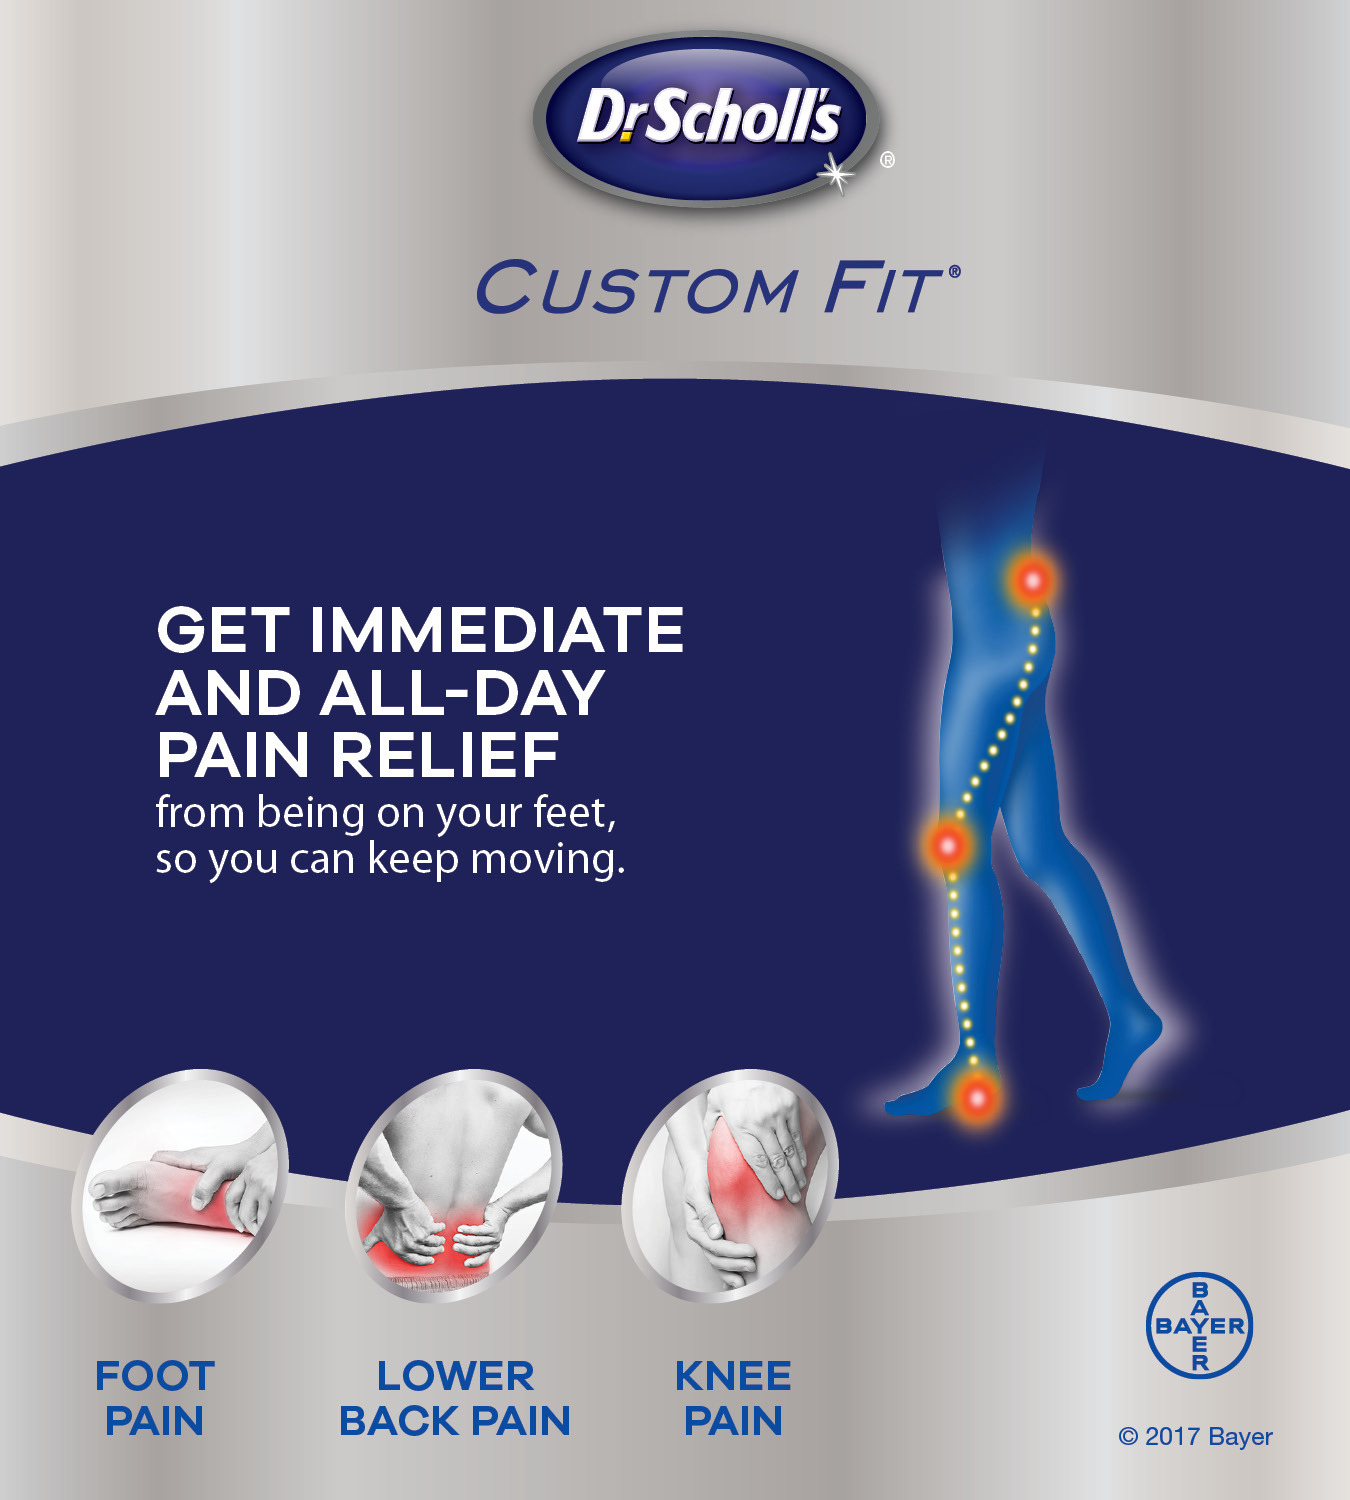 Dr Scholls Foot Mapping Kiosk Locations on